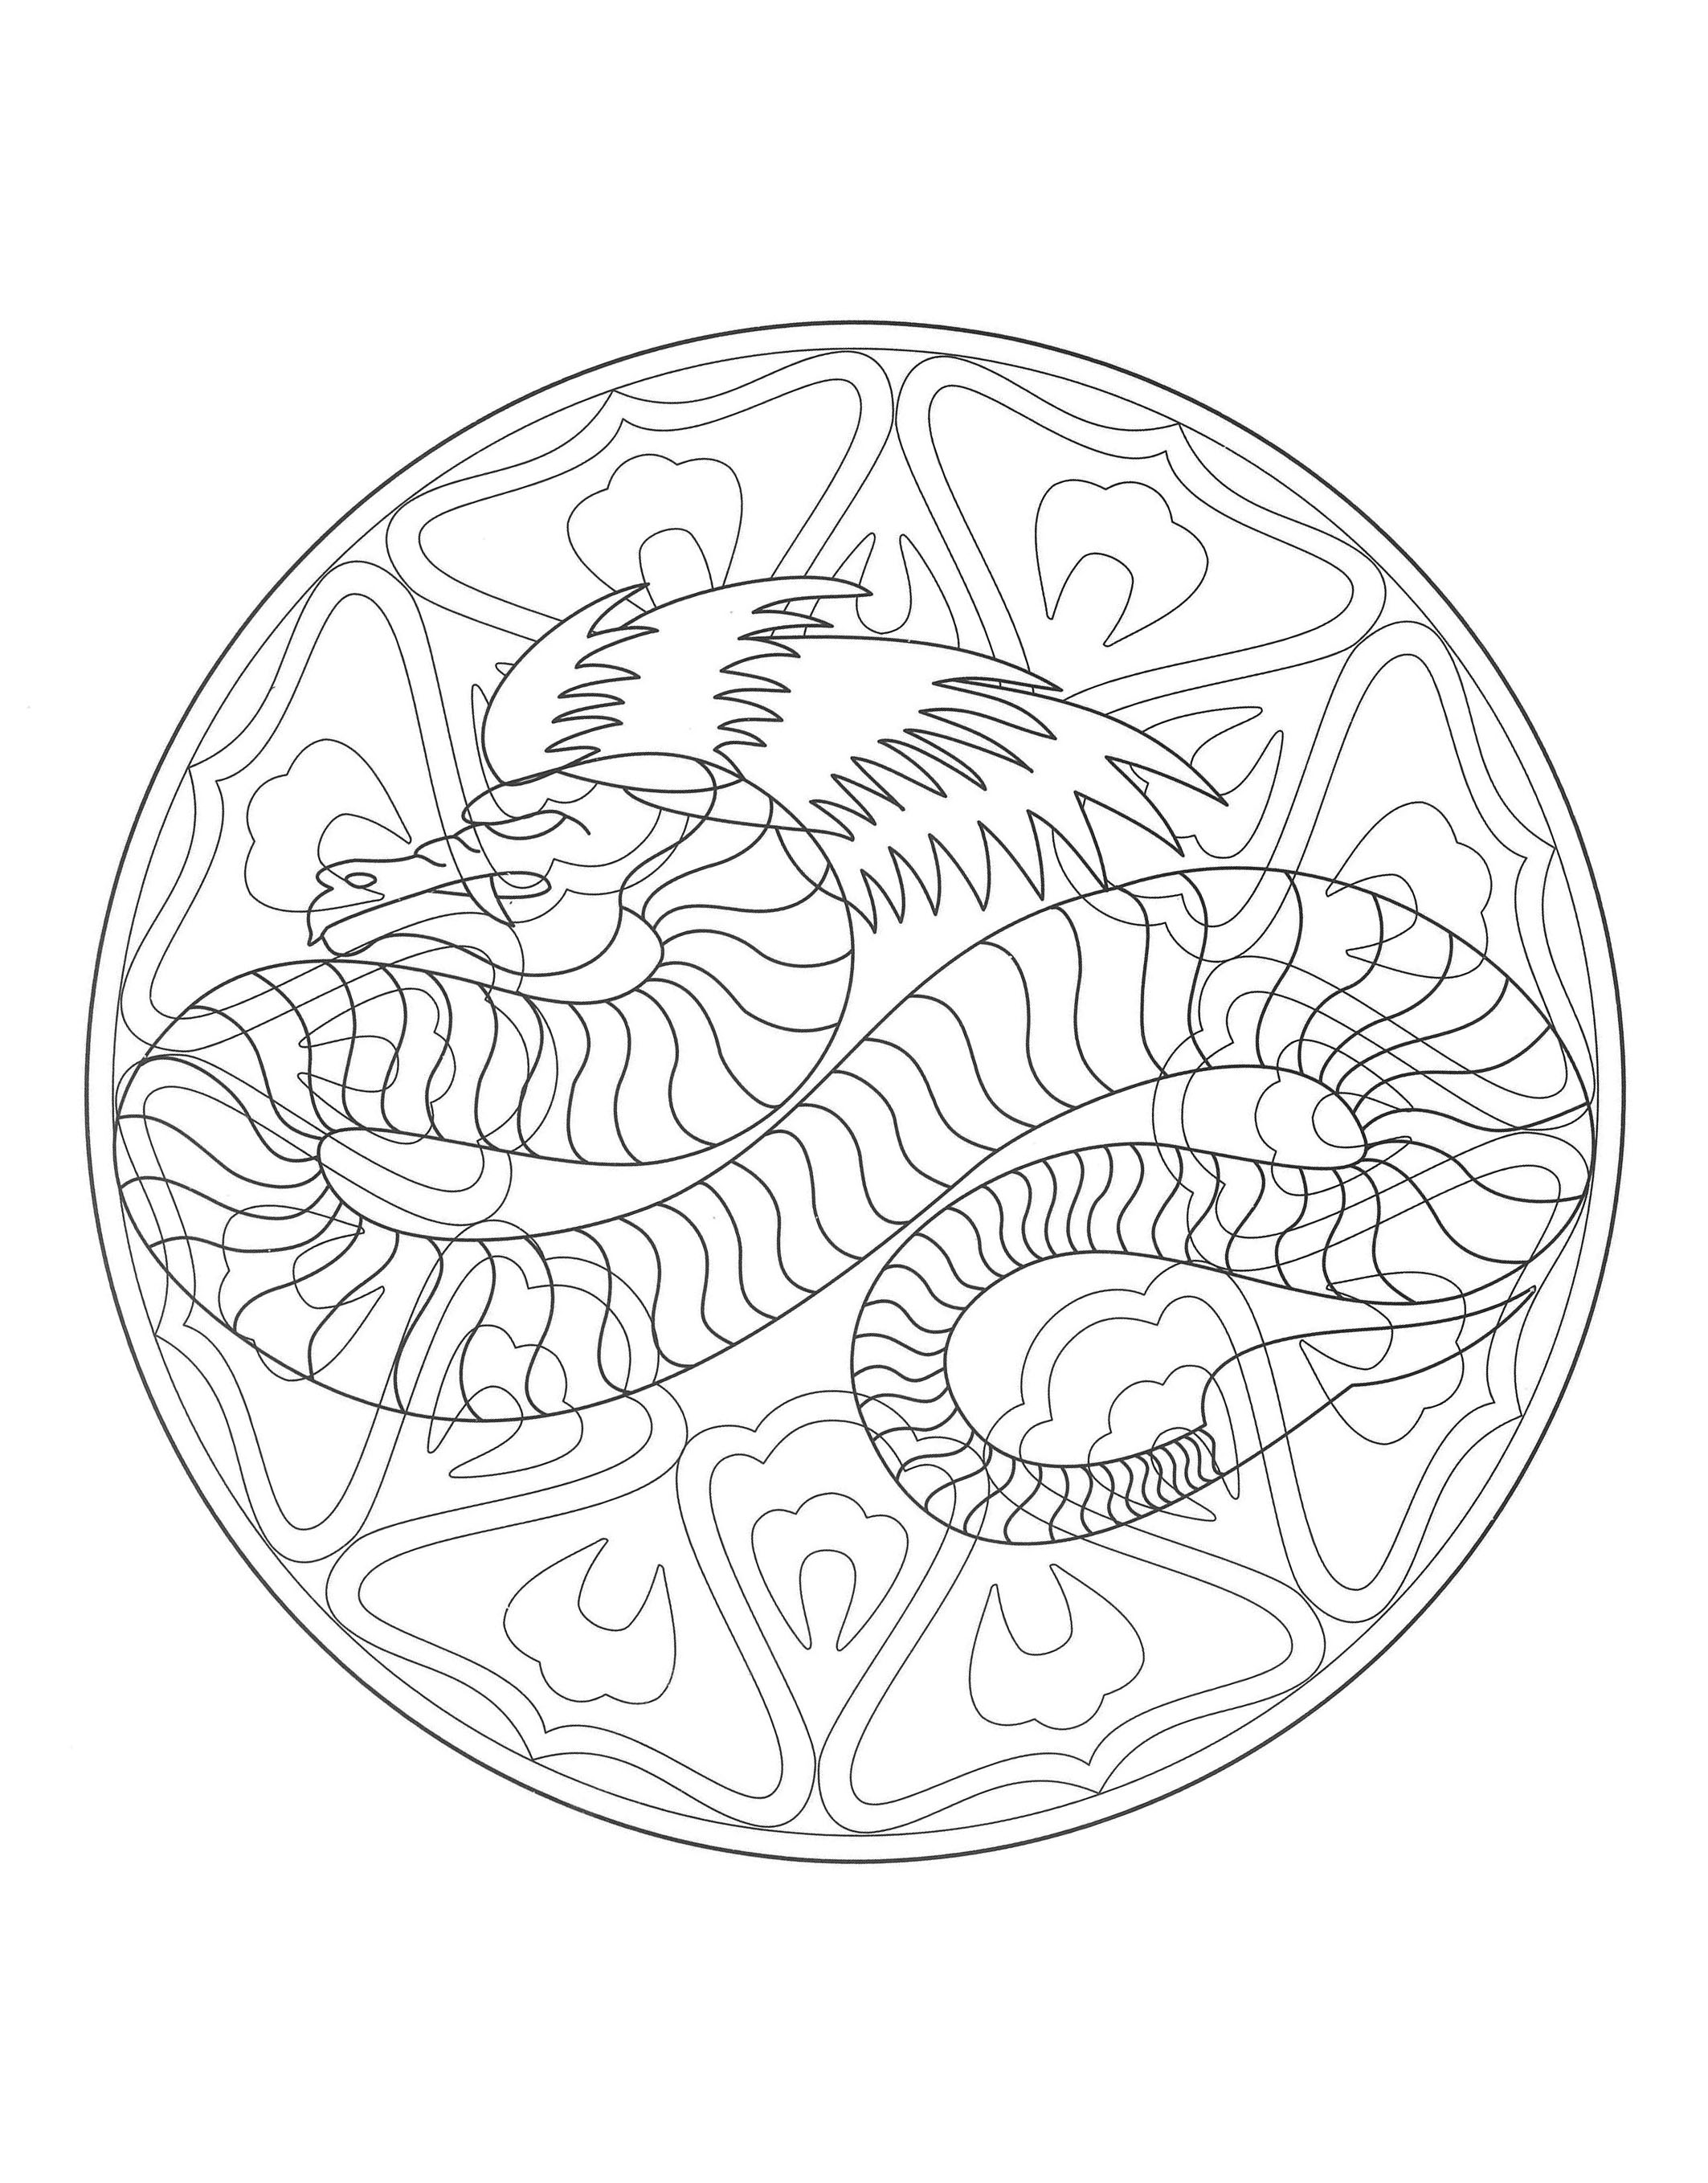 a imprimer mandala dragon 4 coloriage mandalas coloriages pour enfants page 6. Black Bedroom Furniture Sets. Home Design Ideas